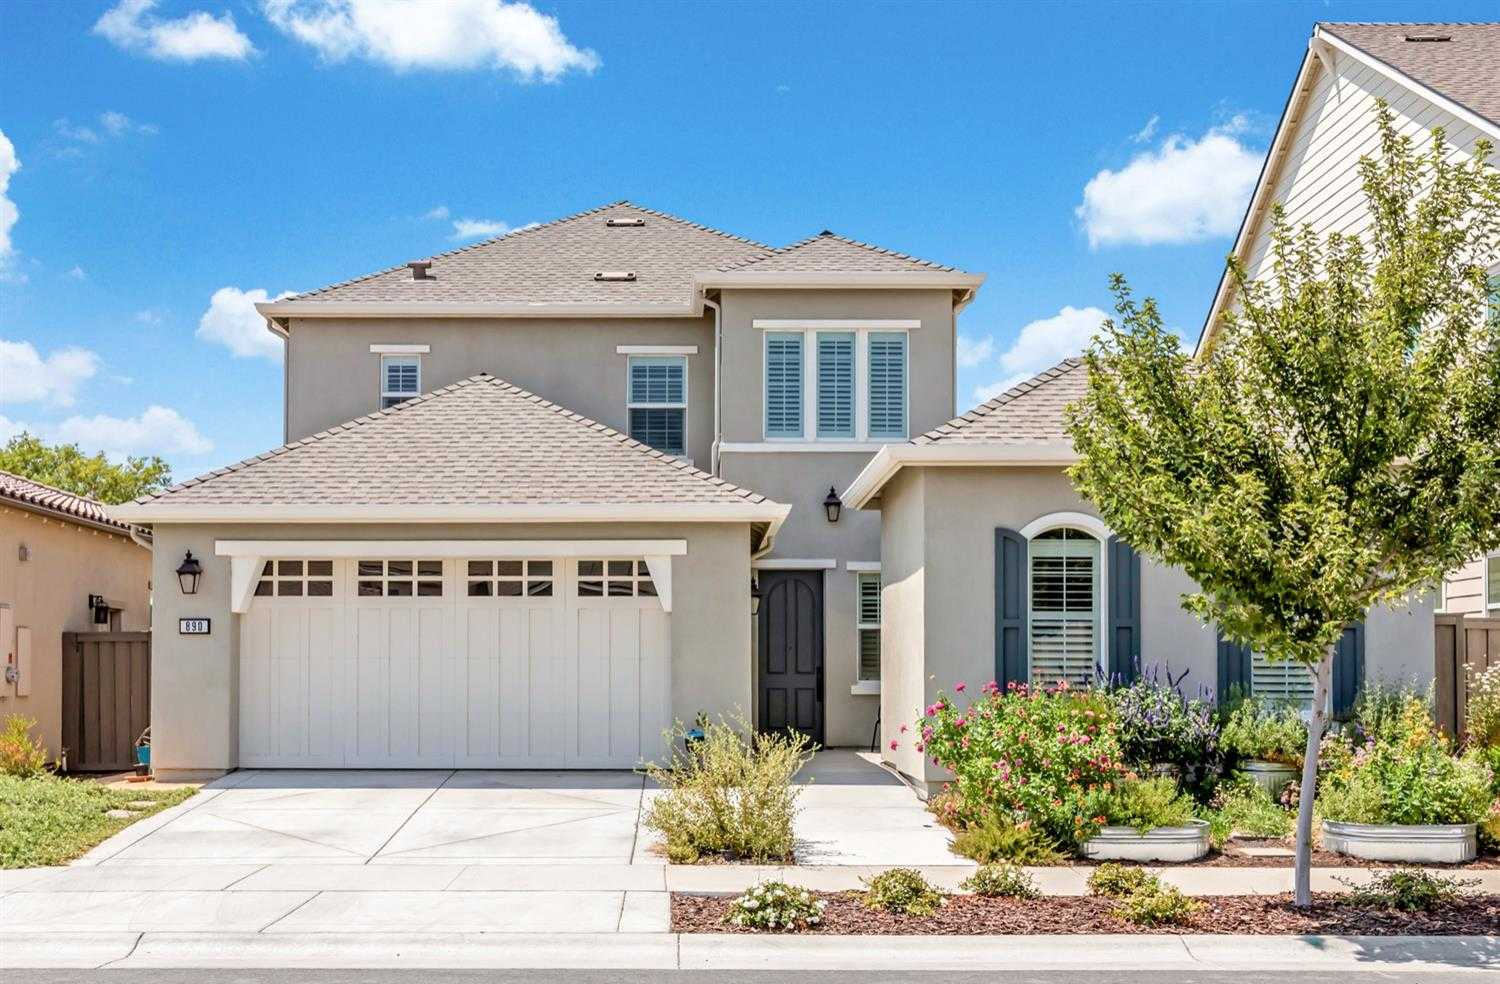 $1,199,000 - 4Br/4Ba -  for Sale in Cannery, Davis